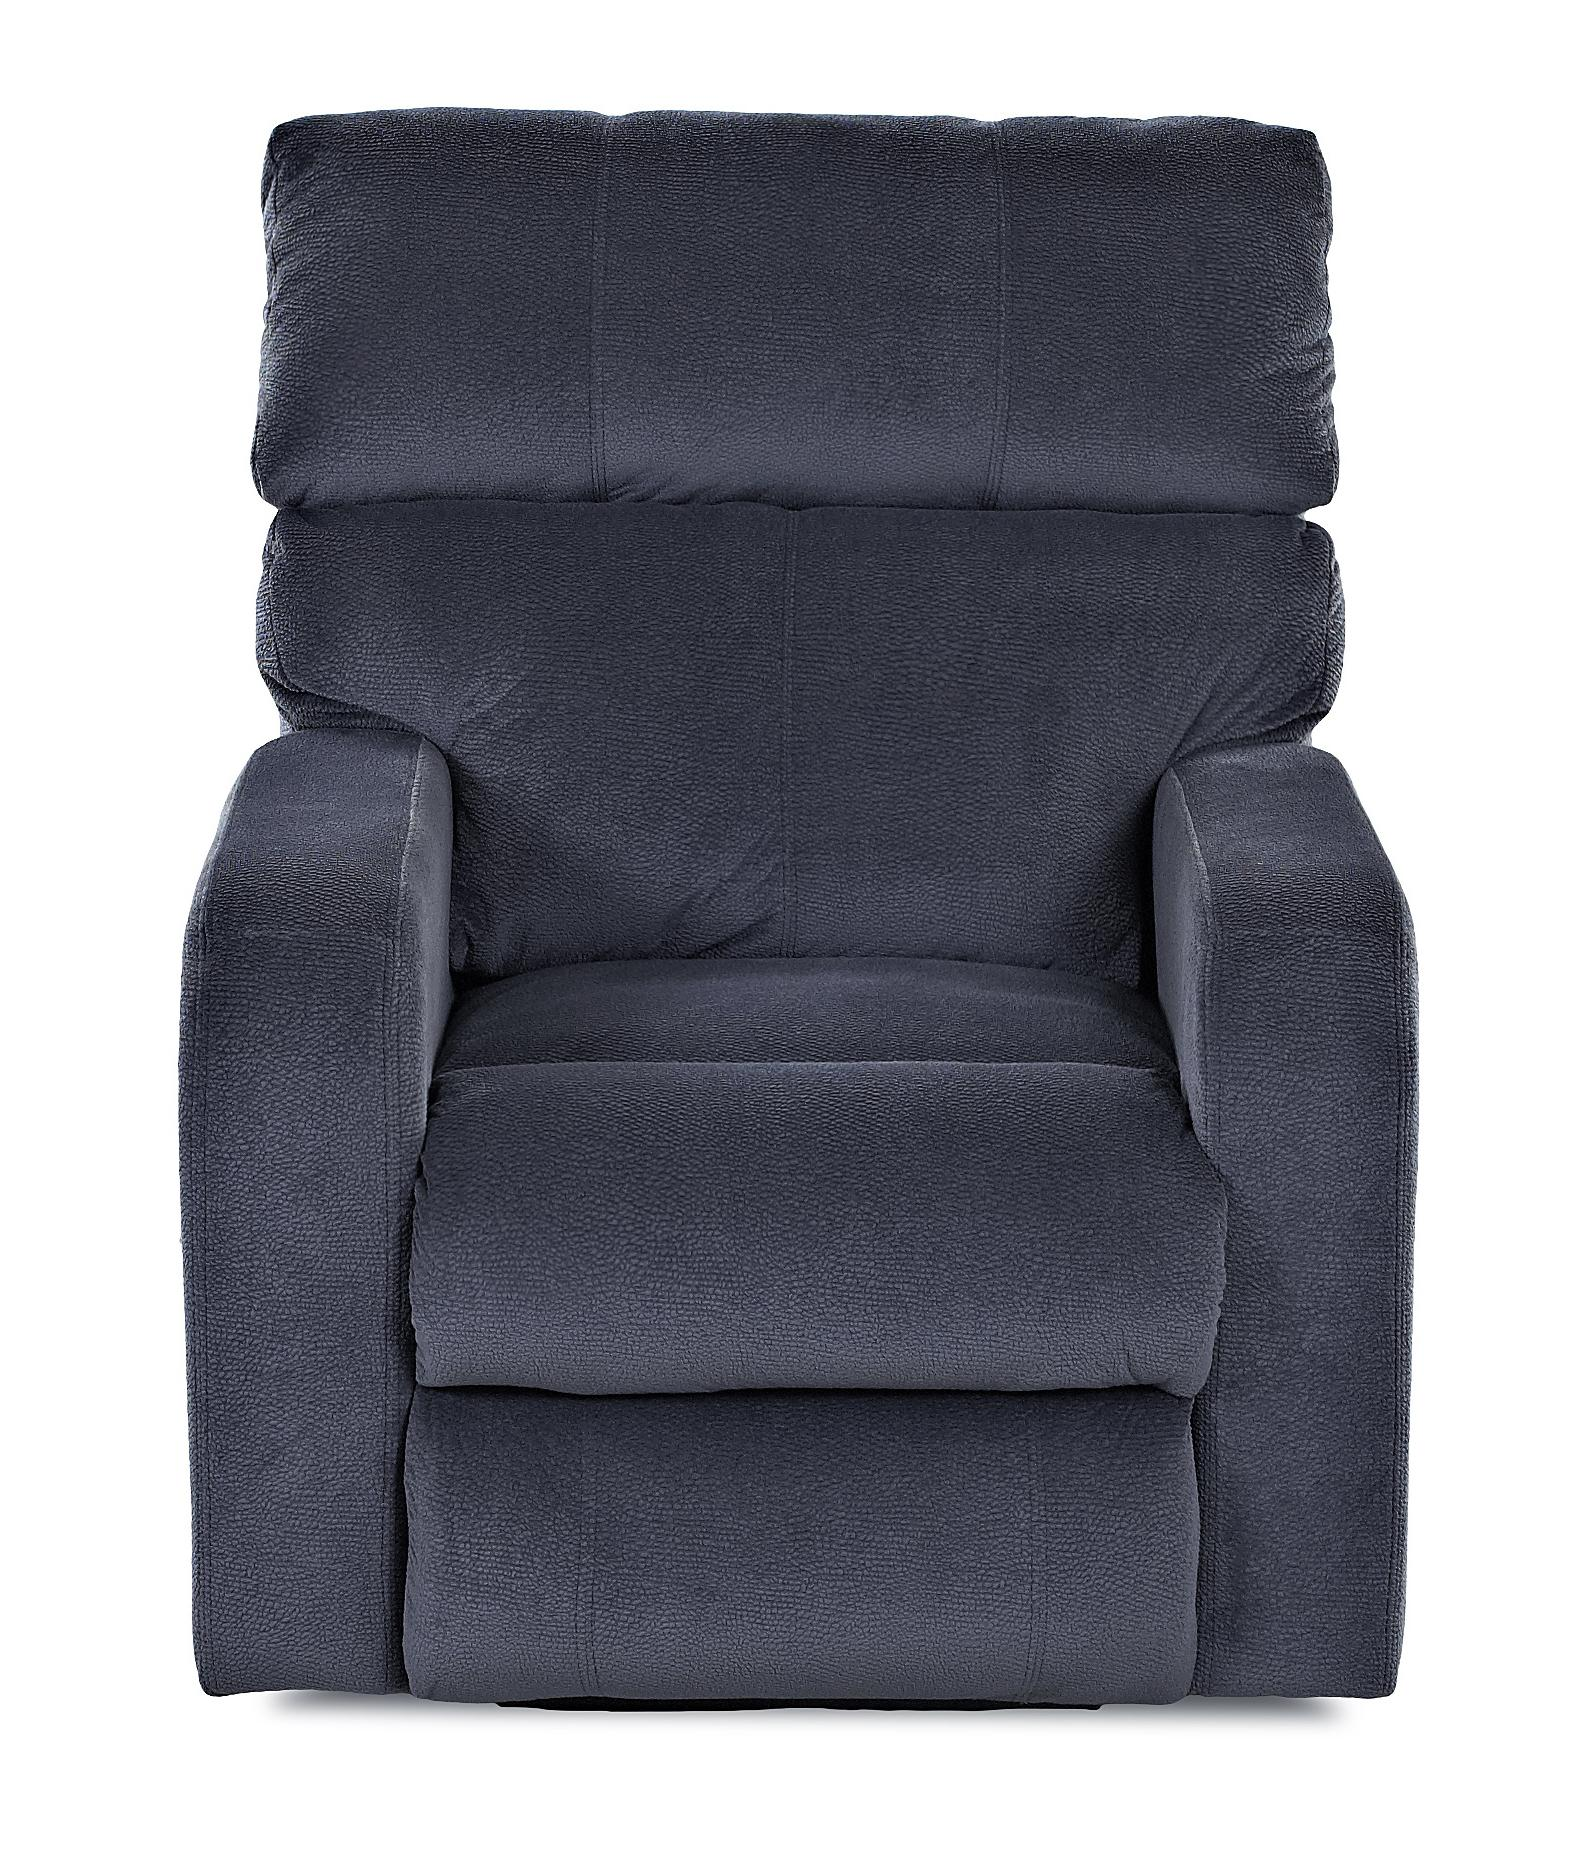 Casual Power Lay Flat Reclining Chair